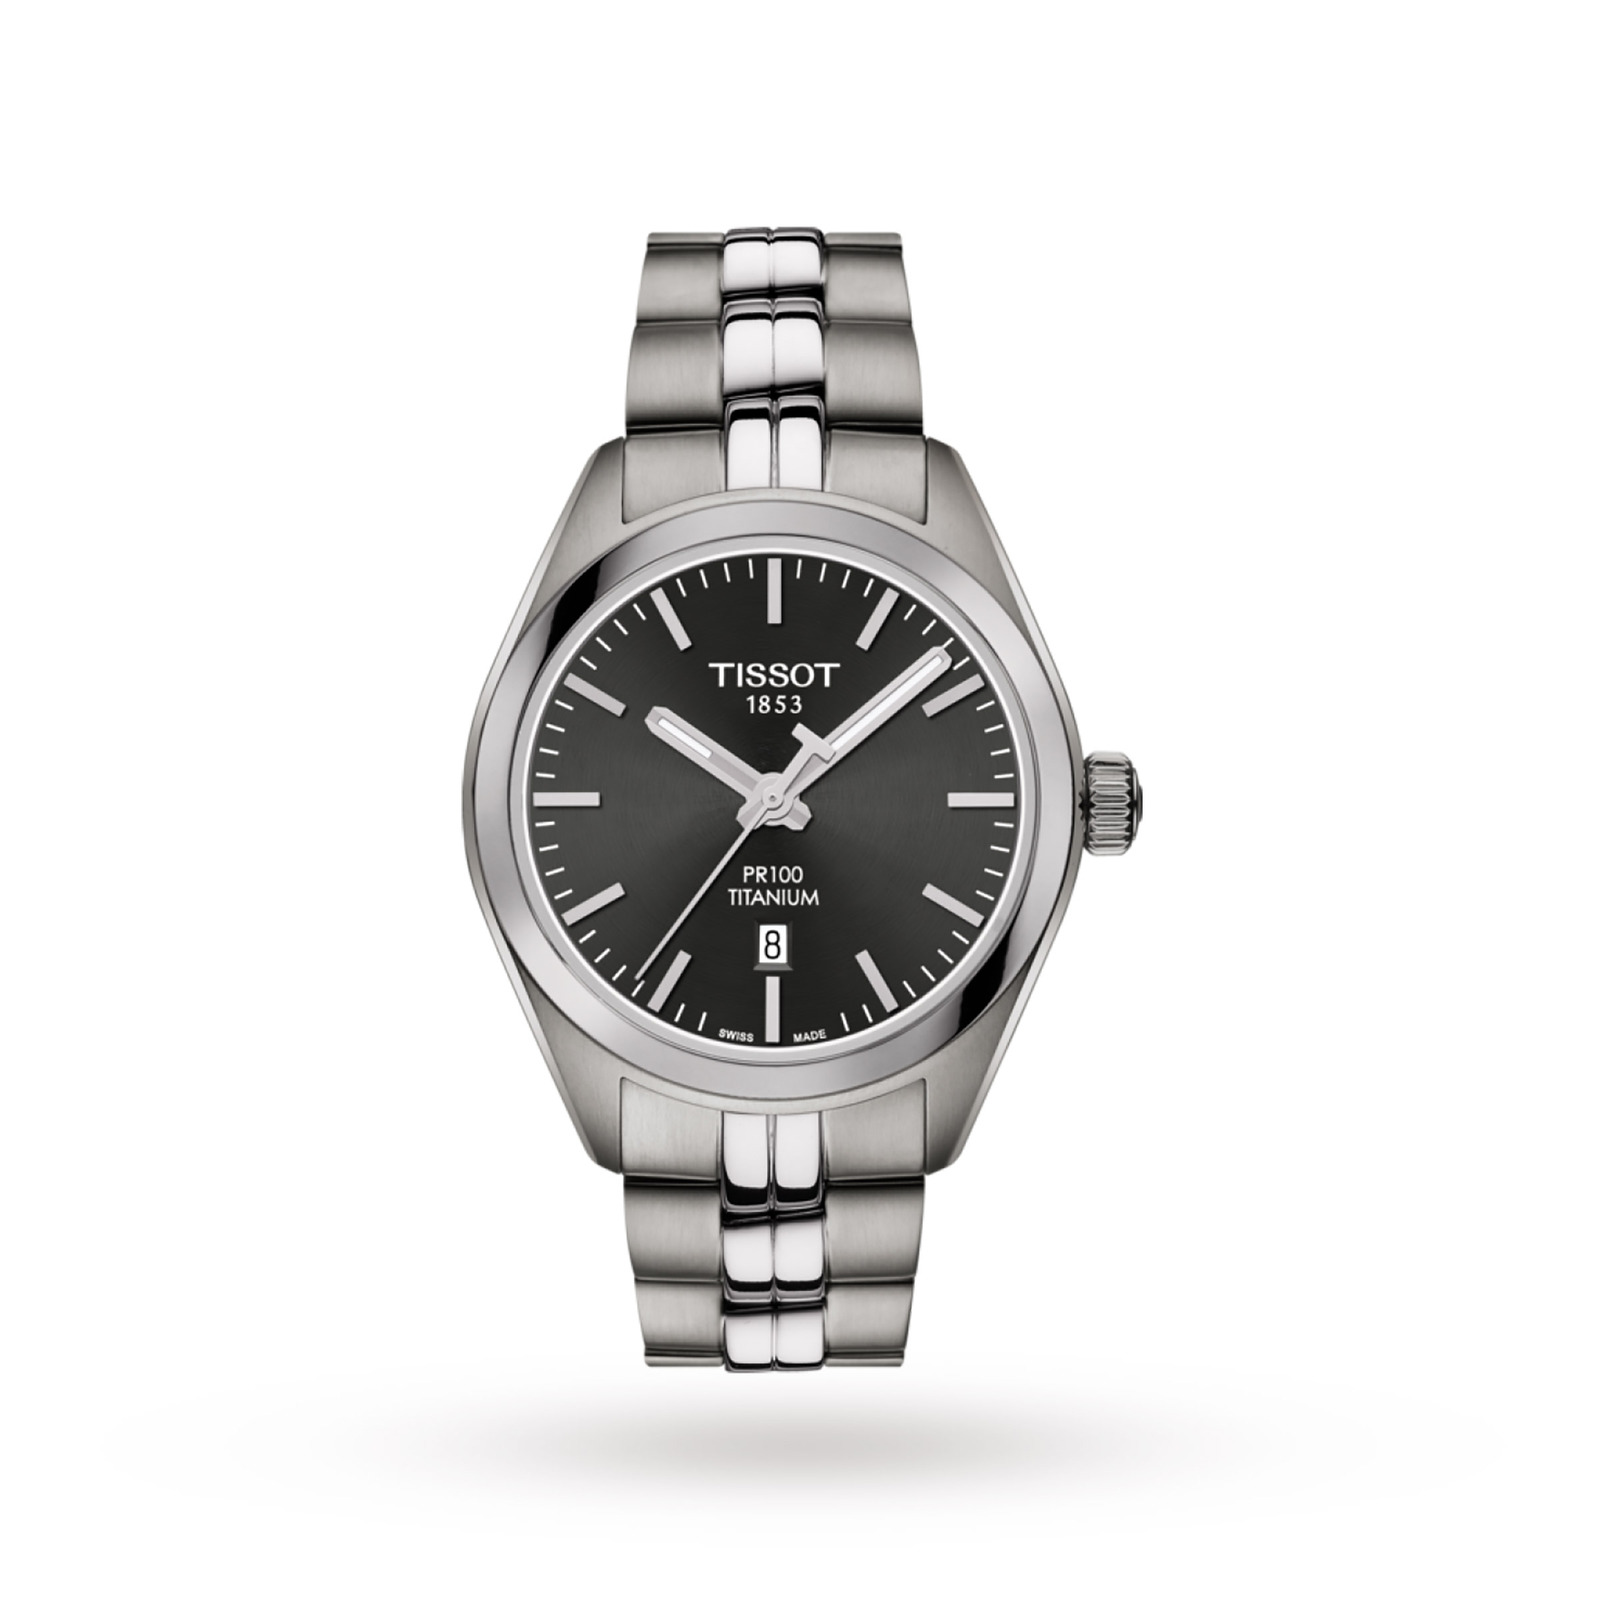 Tissot Ladies' PR100 Titanium Watch